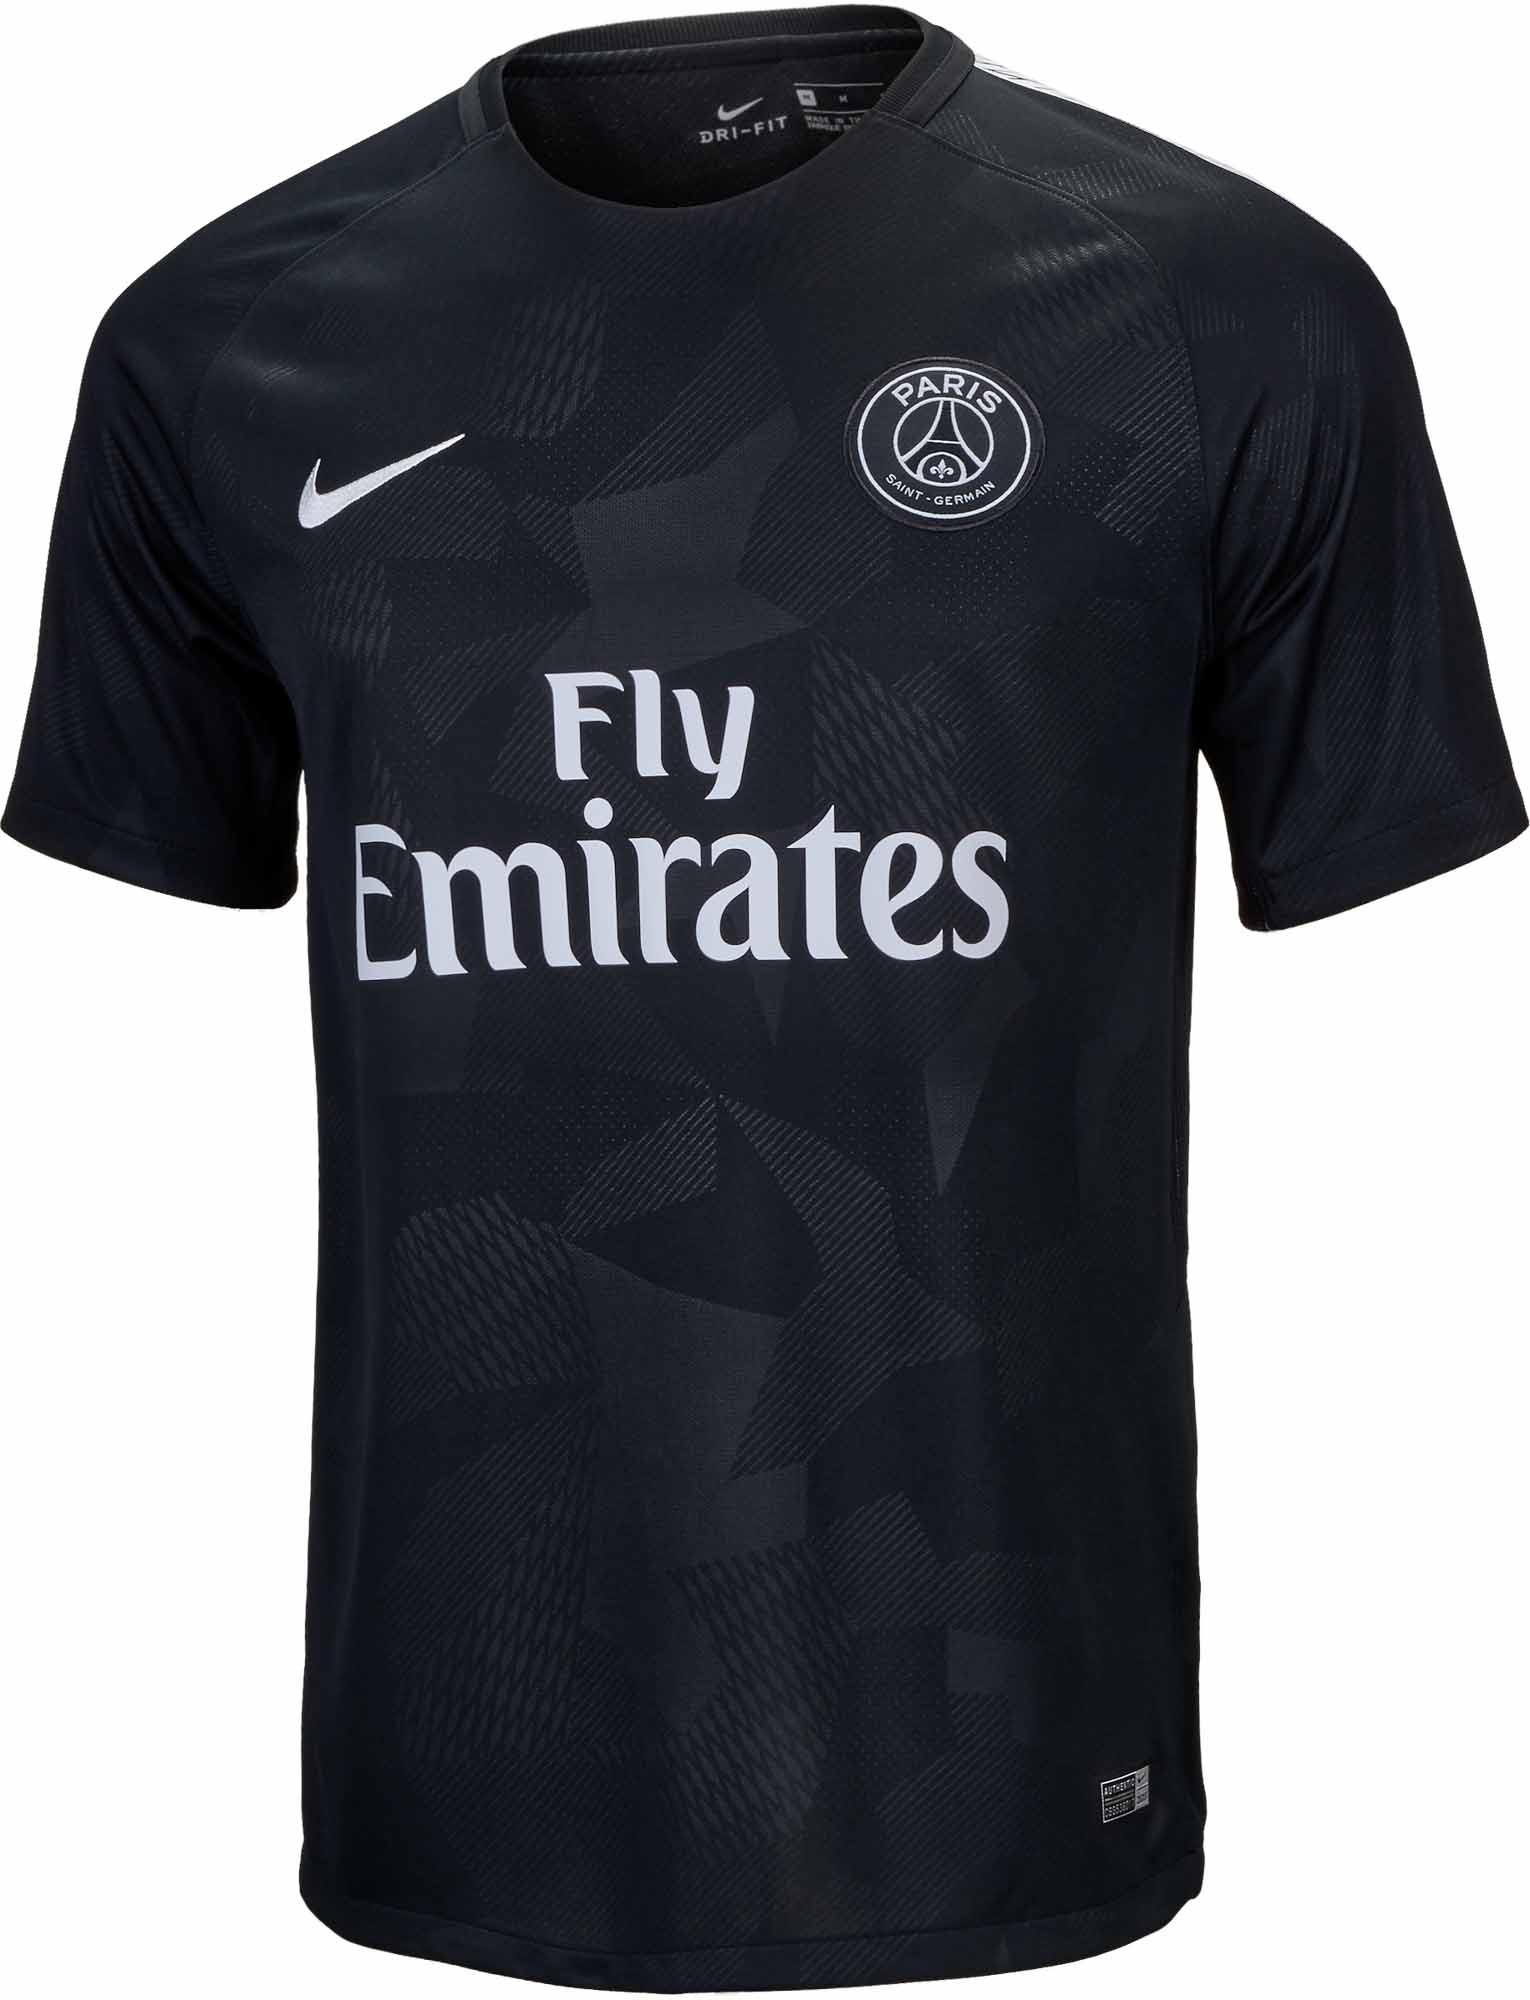 Nike Paris Saint-Germain 3rd Jersey - 17 18 PSG Jerseys 8ca32902e